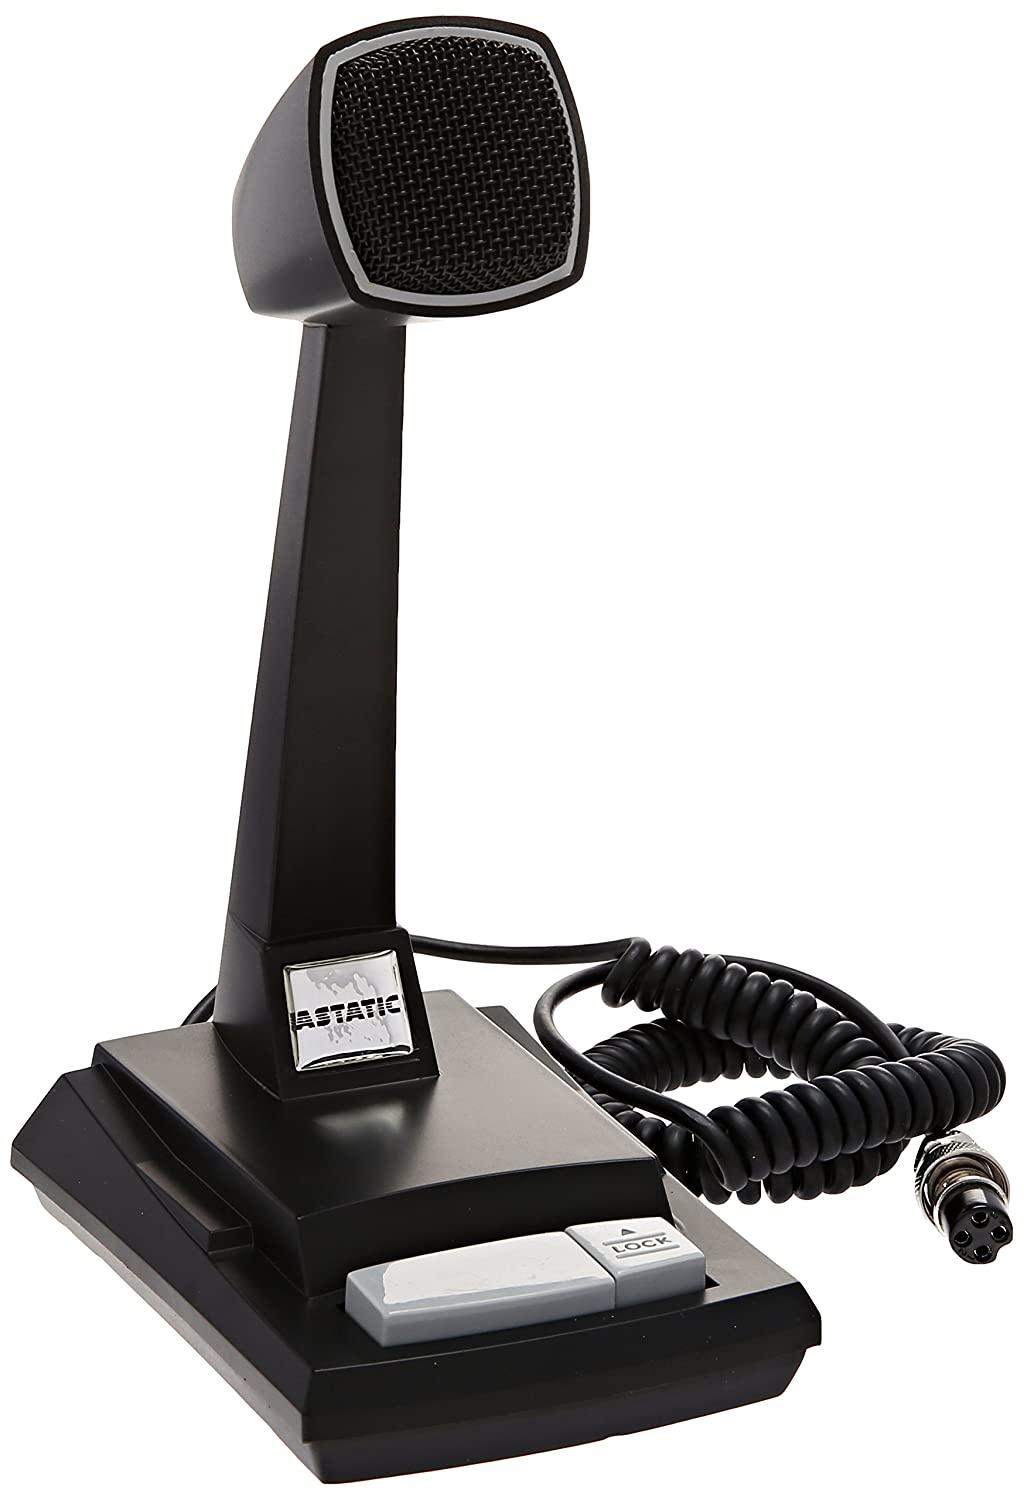 Amazon.com: Astatic 302-AST878DM Cb Desk Mic: Automotive